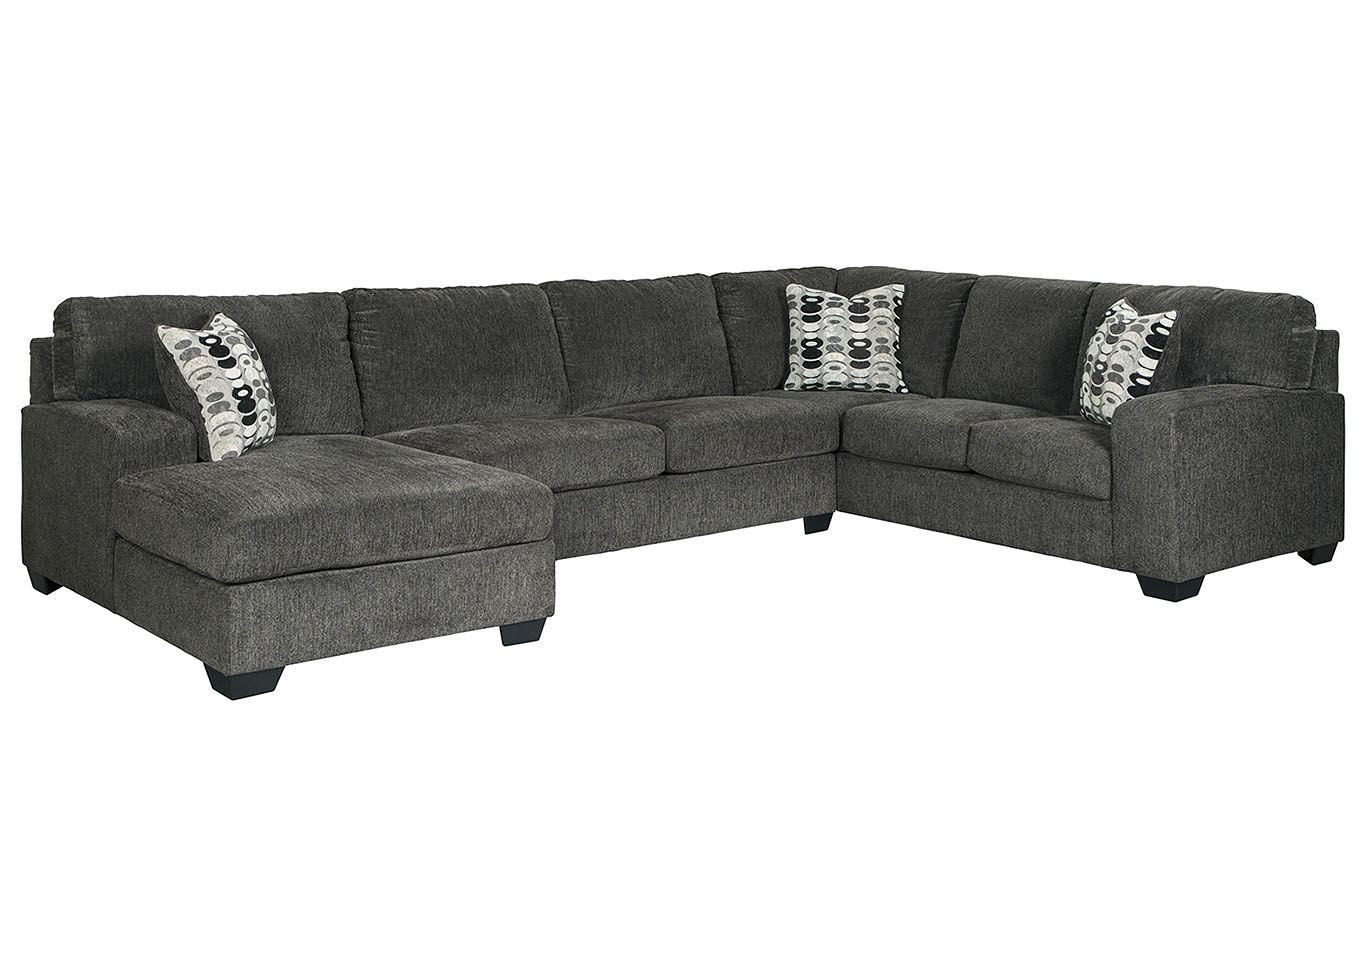 Sofa For Sale Houston Affordable Furniture Houston Ballinasloe Smoke Laf Chaise Sectional